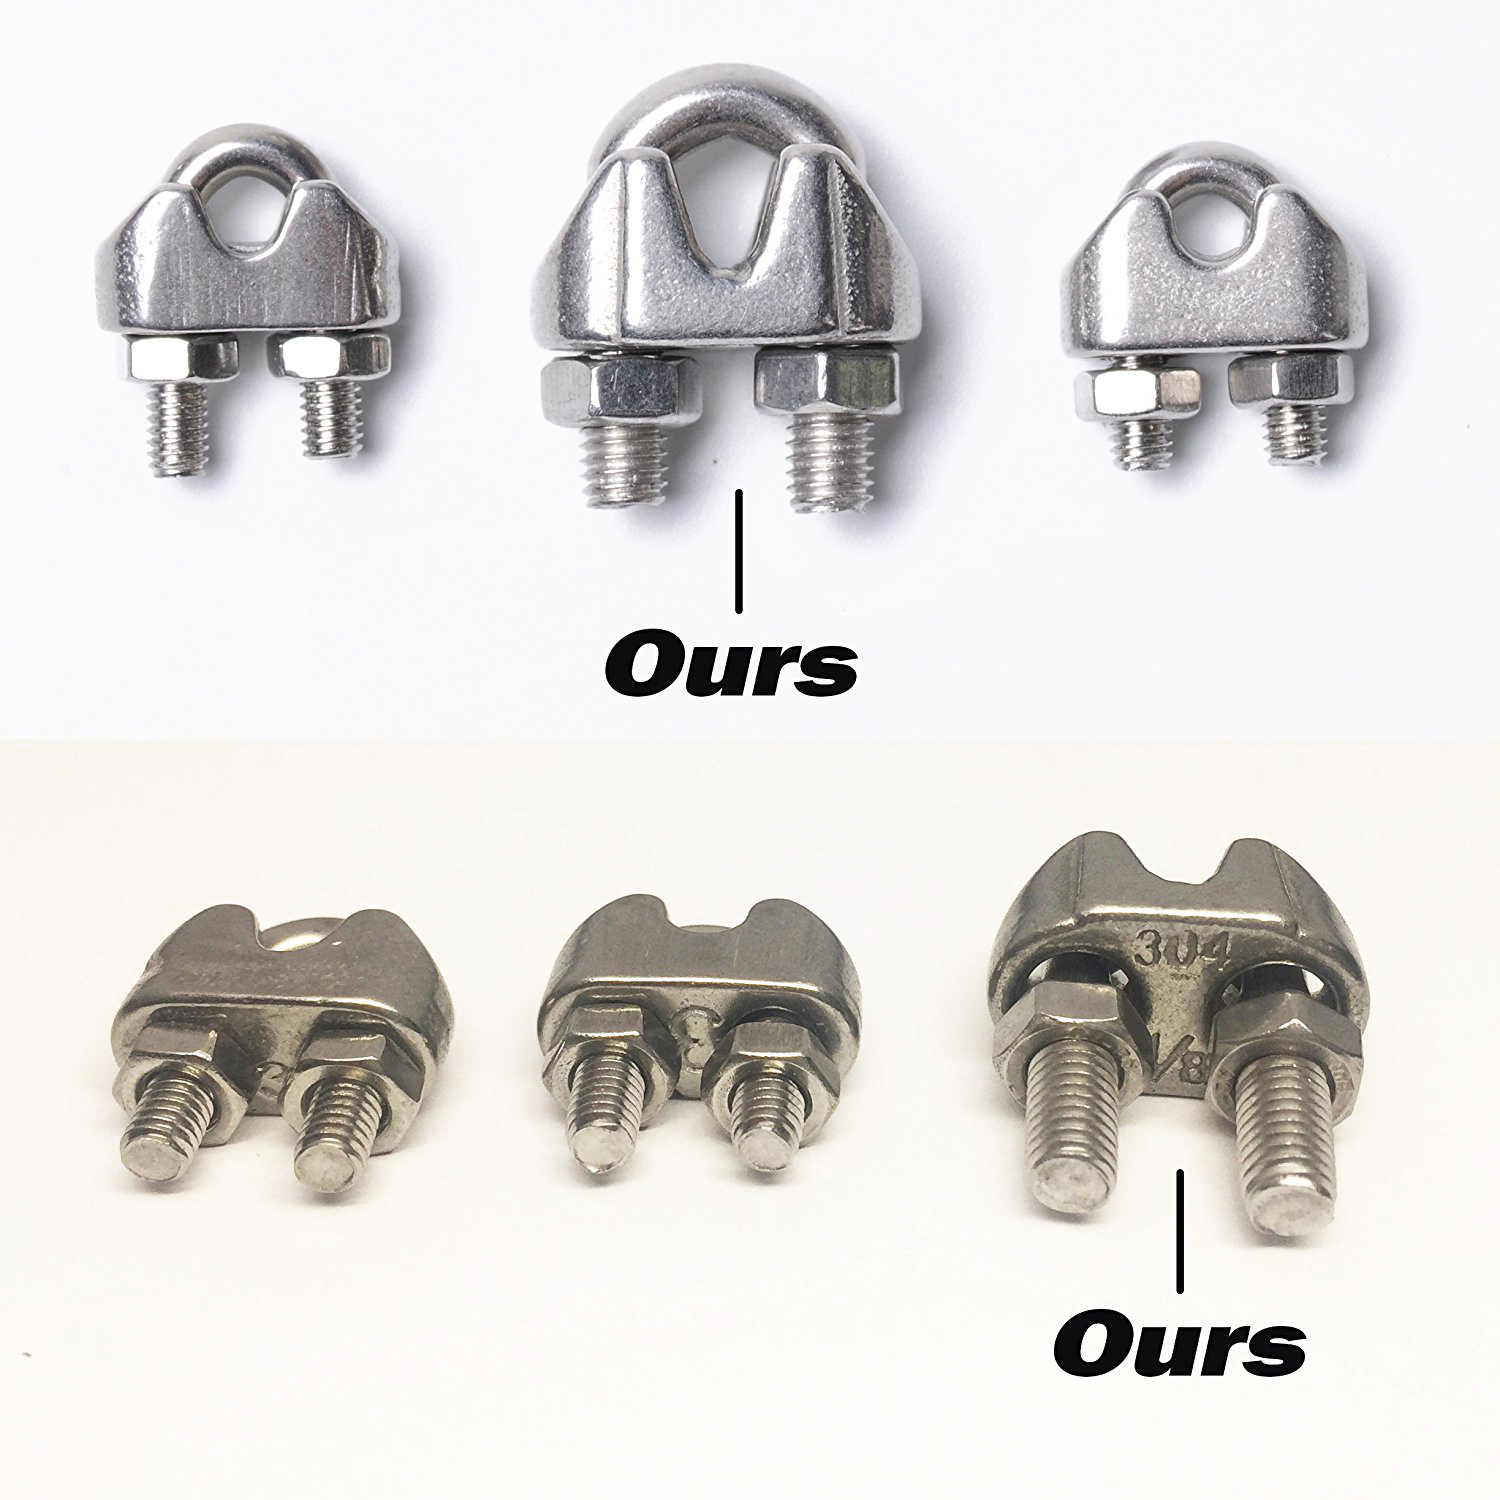 4-Pcs Turnbuckle/Tension(Eye&Hook, M6), 16-Pcs 1/8 Inch Wire Rope Cable Clip/Clamp(M3), 8-Pcs Thimble(M3), Stainless Steel Kit 1 8 3 16 wire rope guardrail accessories 316 stainless steel protector sleeve cable grommet